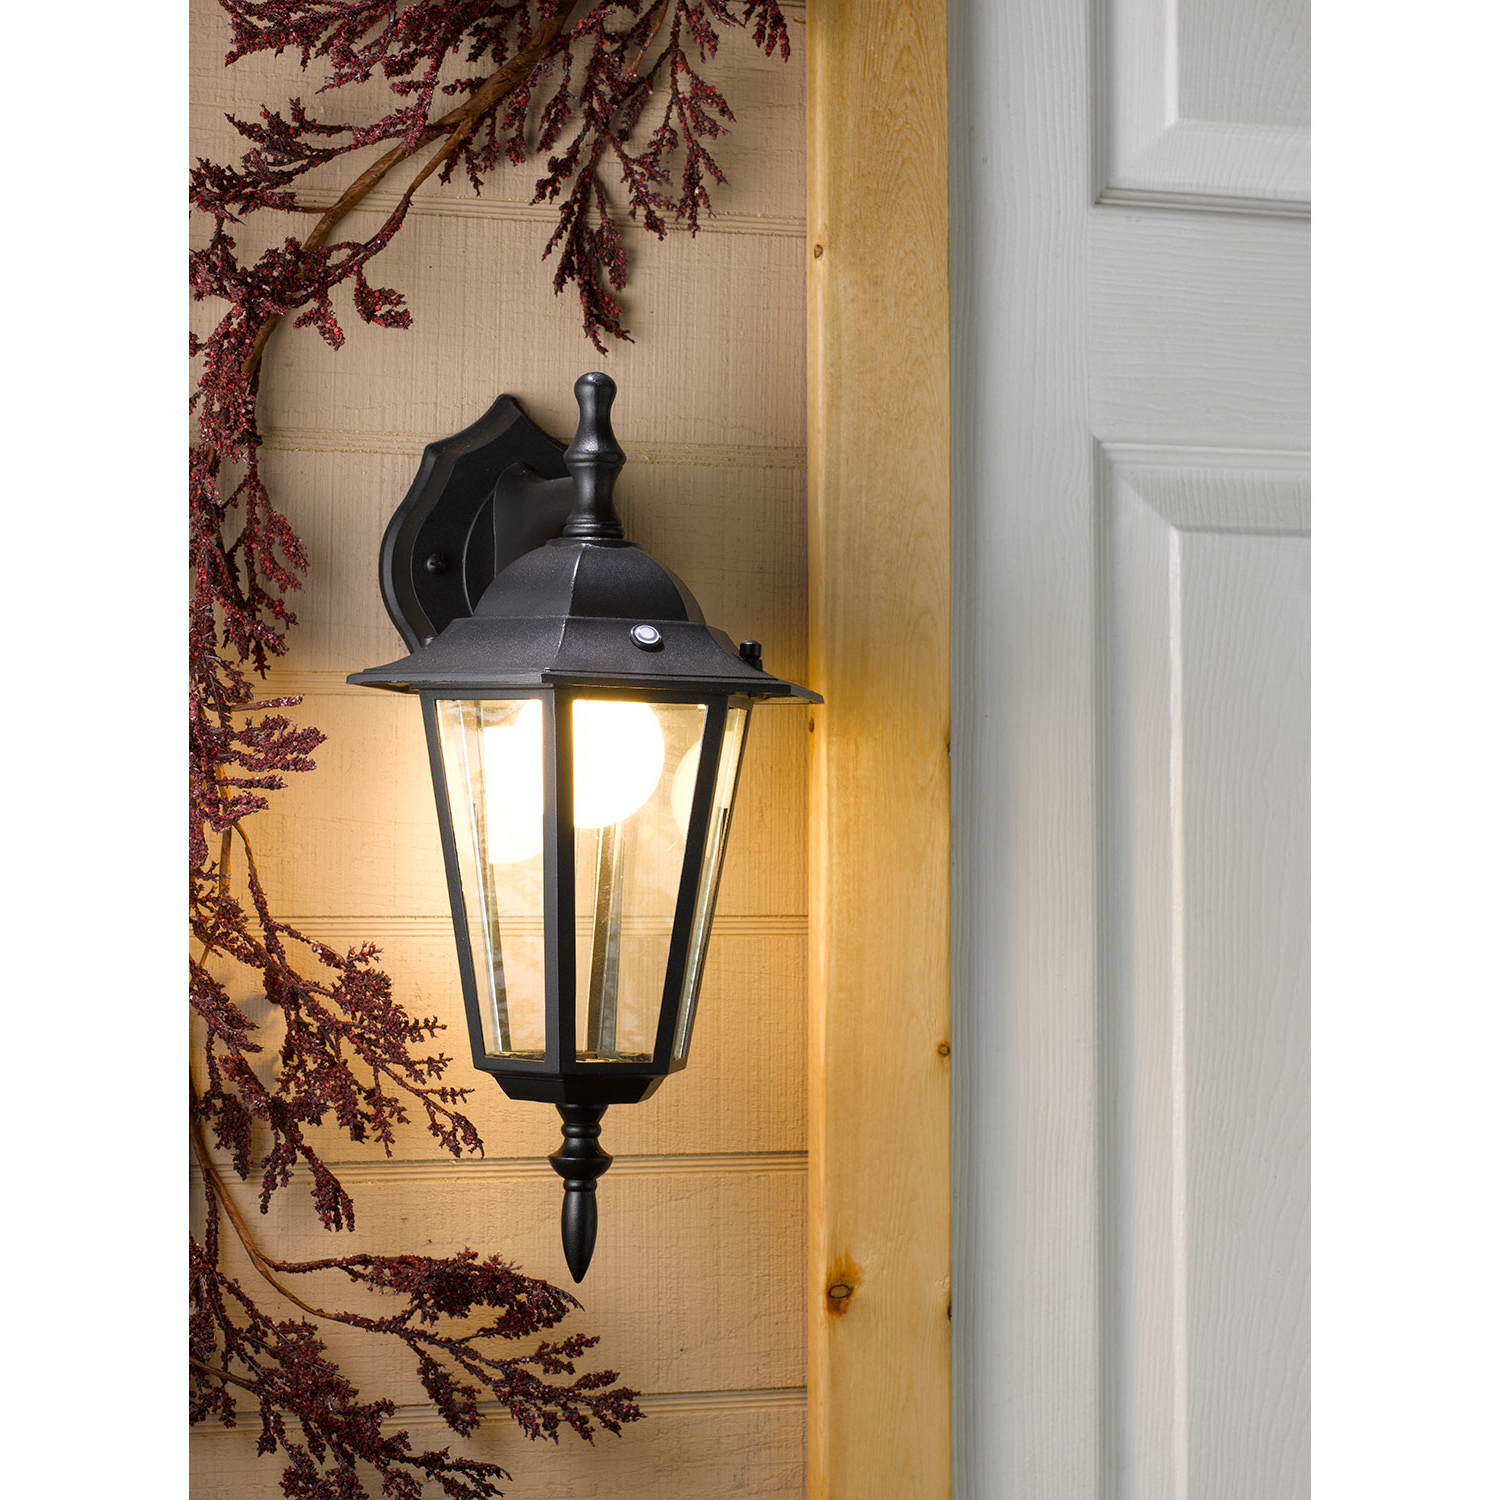 Honeywell Ss0601 08 Led Outdoor Wall Mount Lantern Light In Popular Carner Outdoor Wall Lanterns (View 2 of 20)